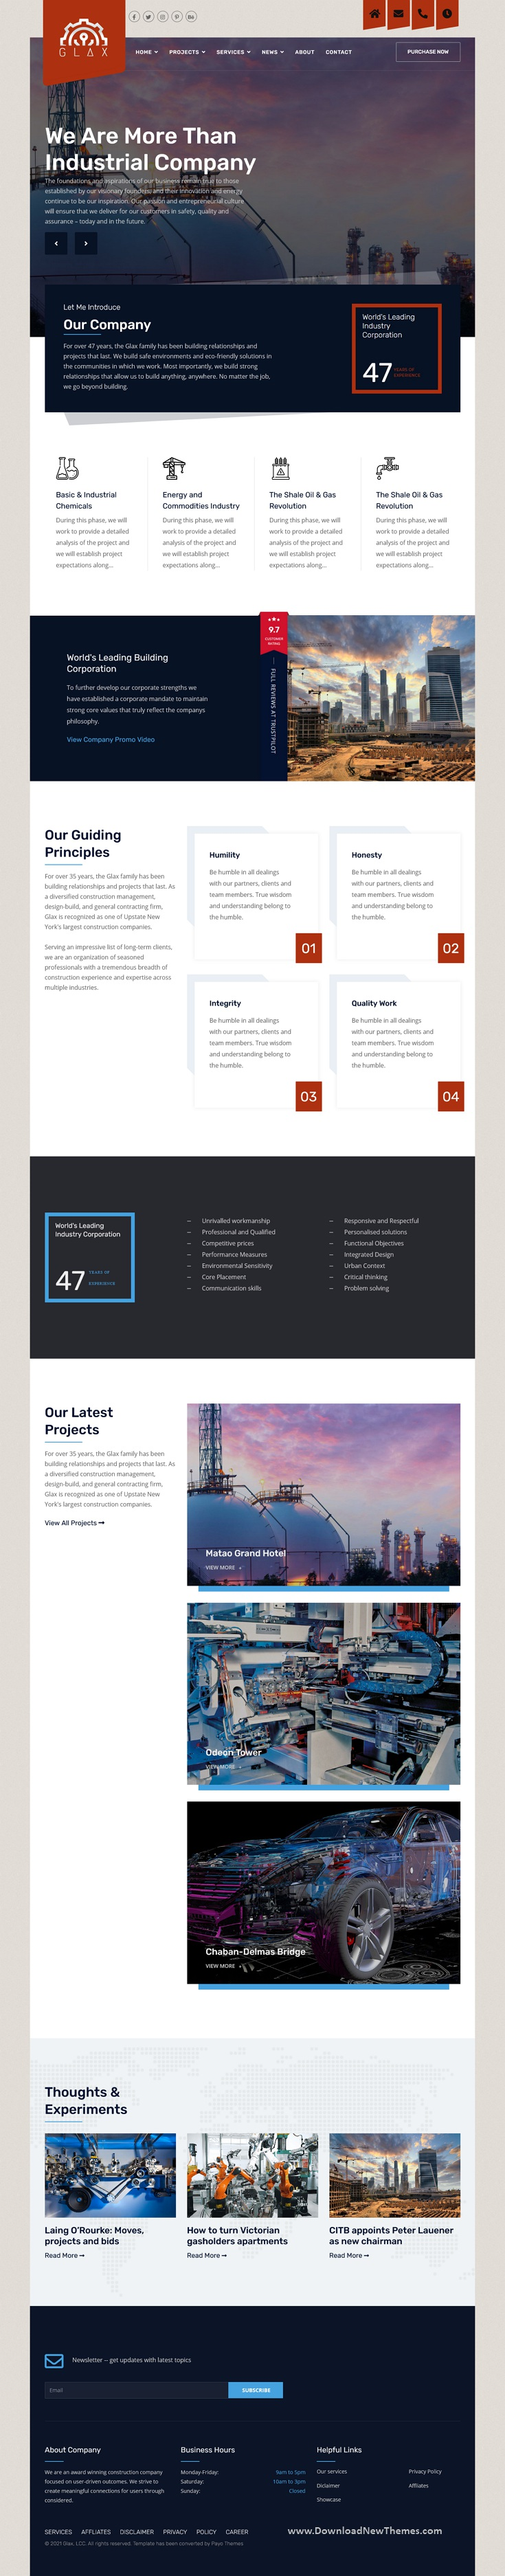 Glax Industry Joomla Template With Page Builder